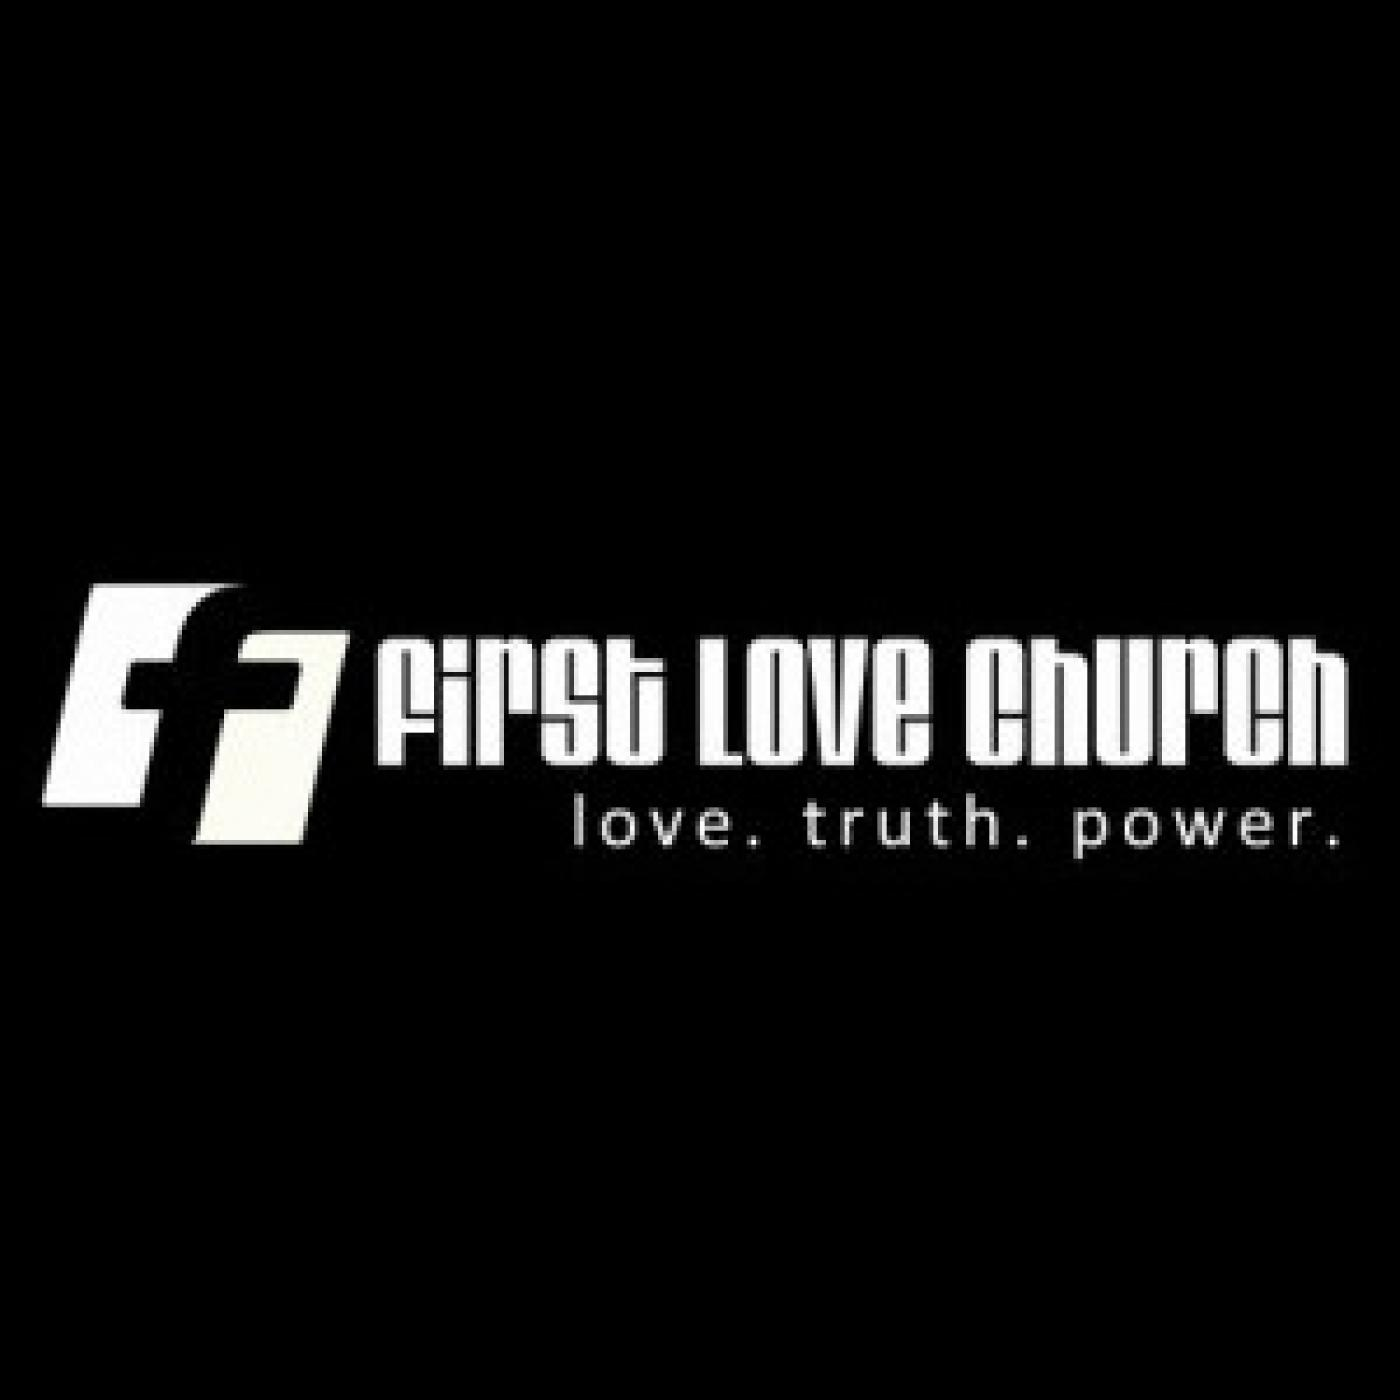 First Love Church